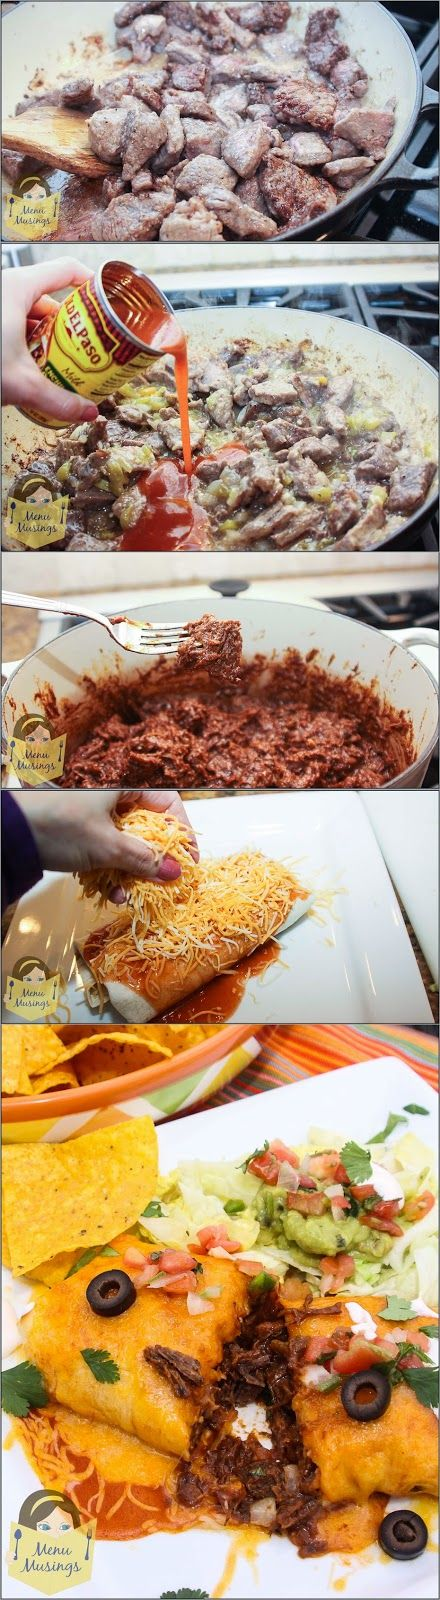 Chili Colorado Burritos - chunks of beef slow simmered in a Mexican style red chili sauce until they are basically falling apart tender, all wrapped up in a burrito and smothered with cheese. Step-by-step photos! ♥